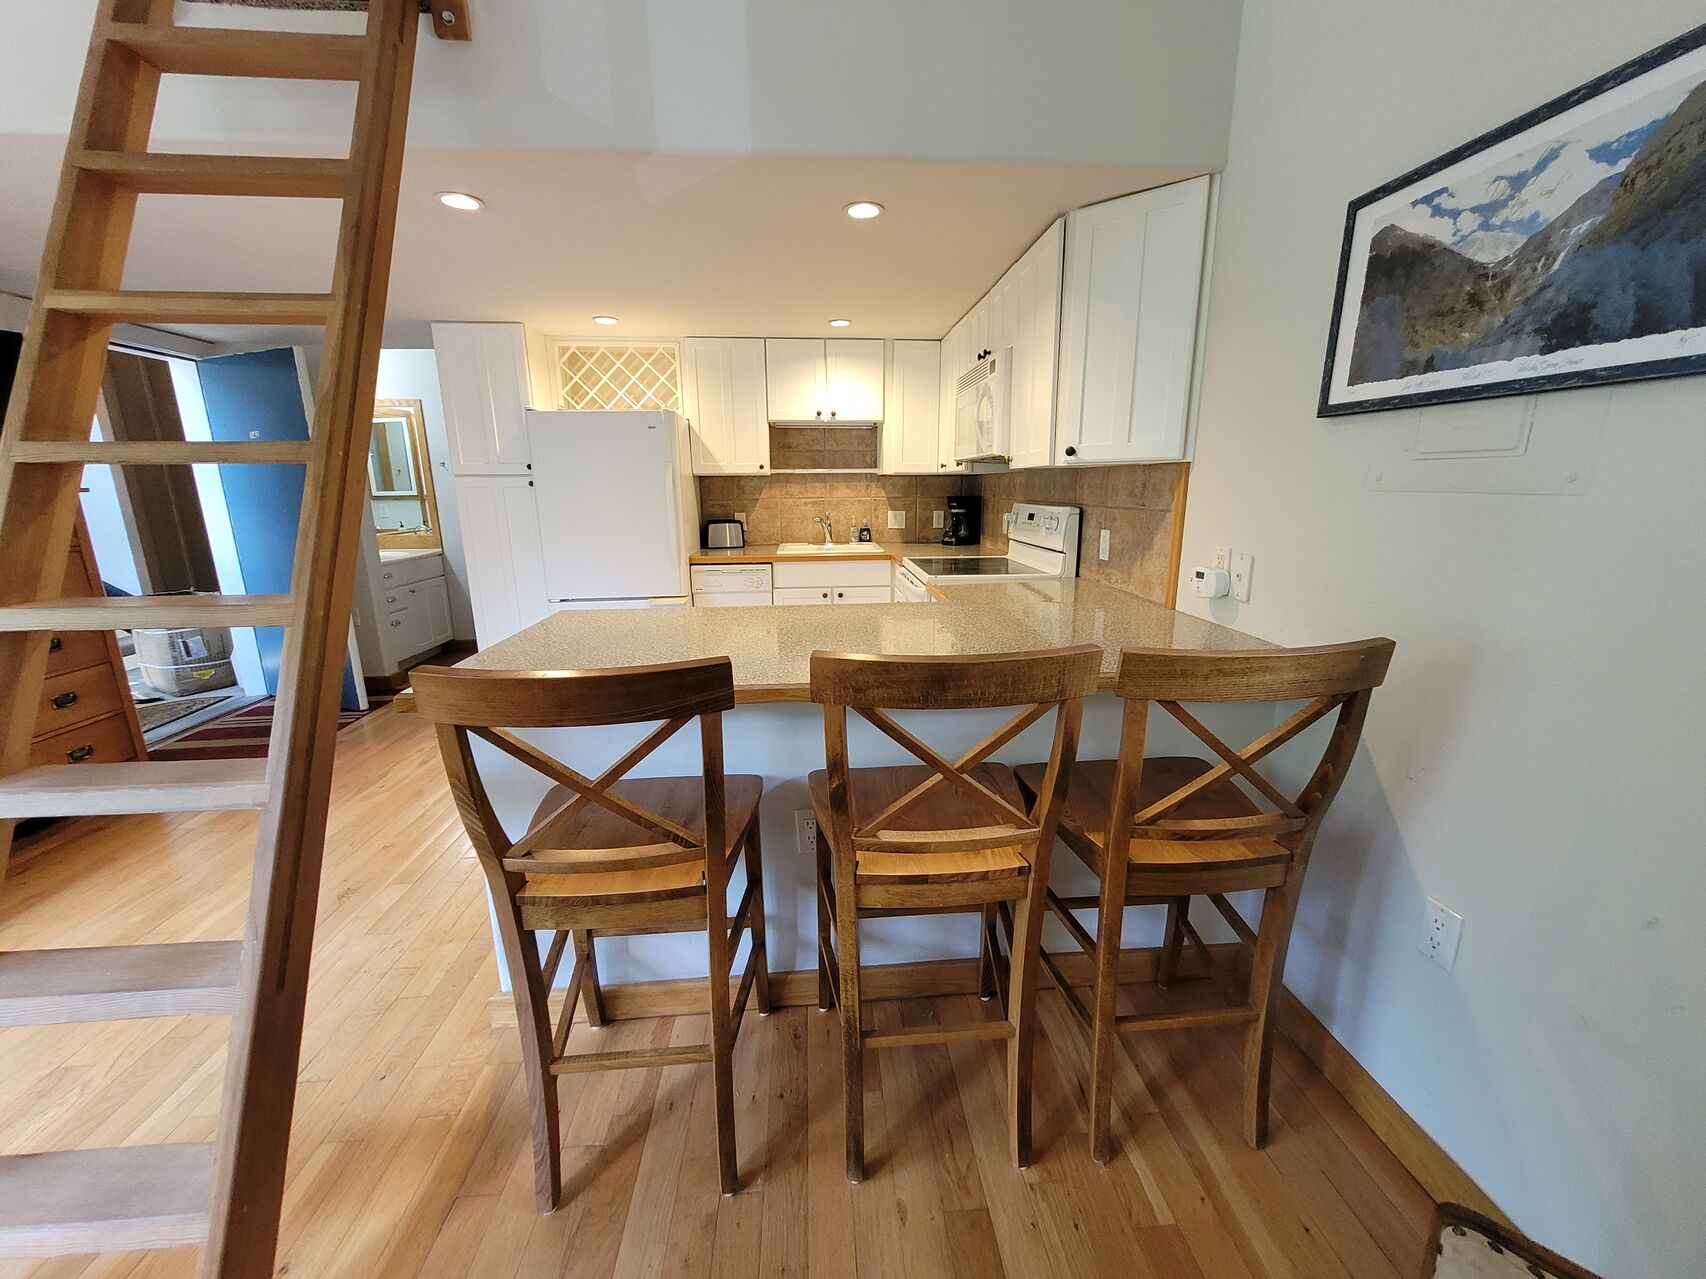 Kitchen with three wood seats and white cabinets